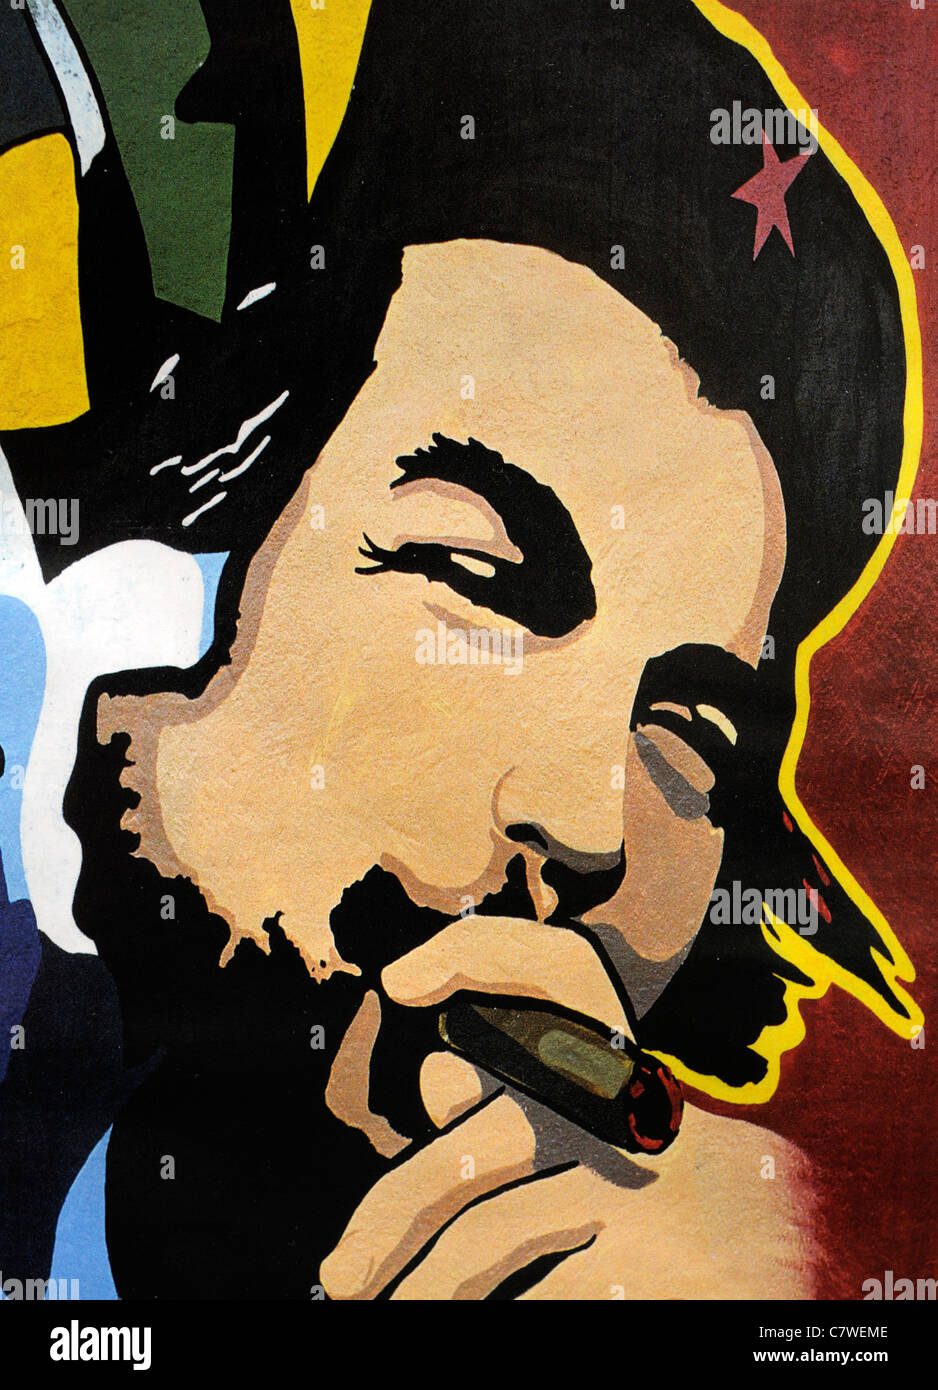 che guevara cartoon illustration from a moscow magazine russia communist communism hero cuba icon iconic cult - Stock Image